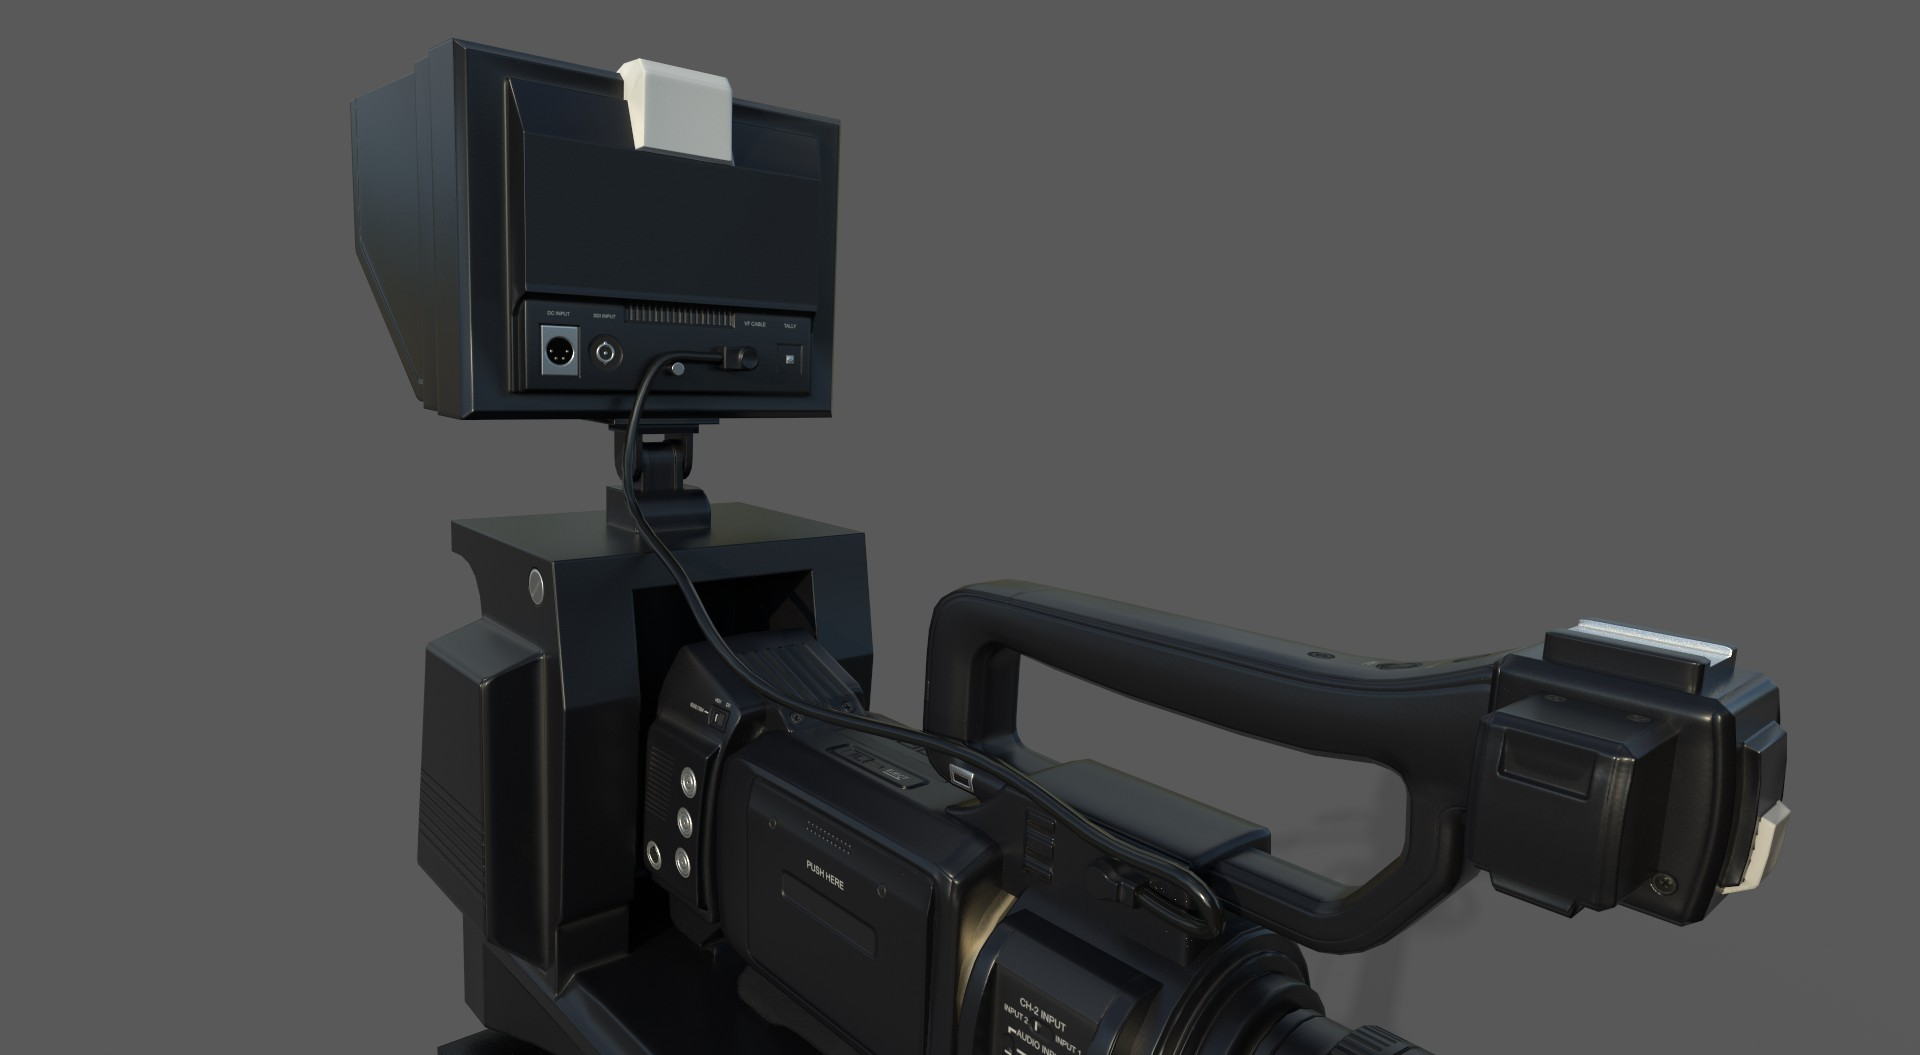 NewsroomCamera_24.jpg